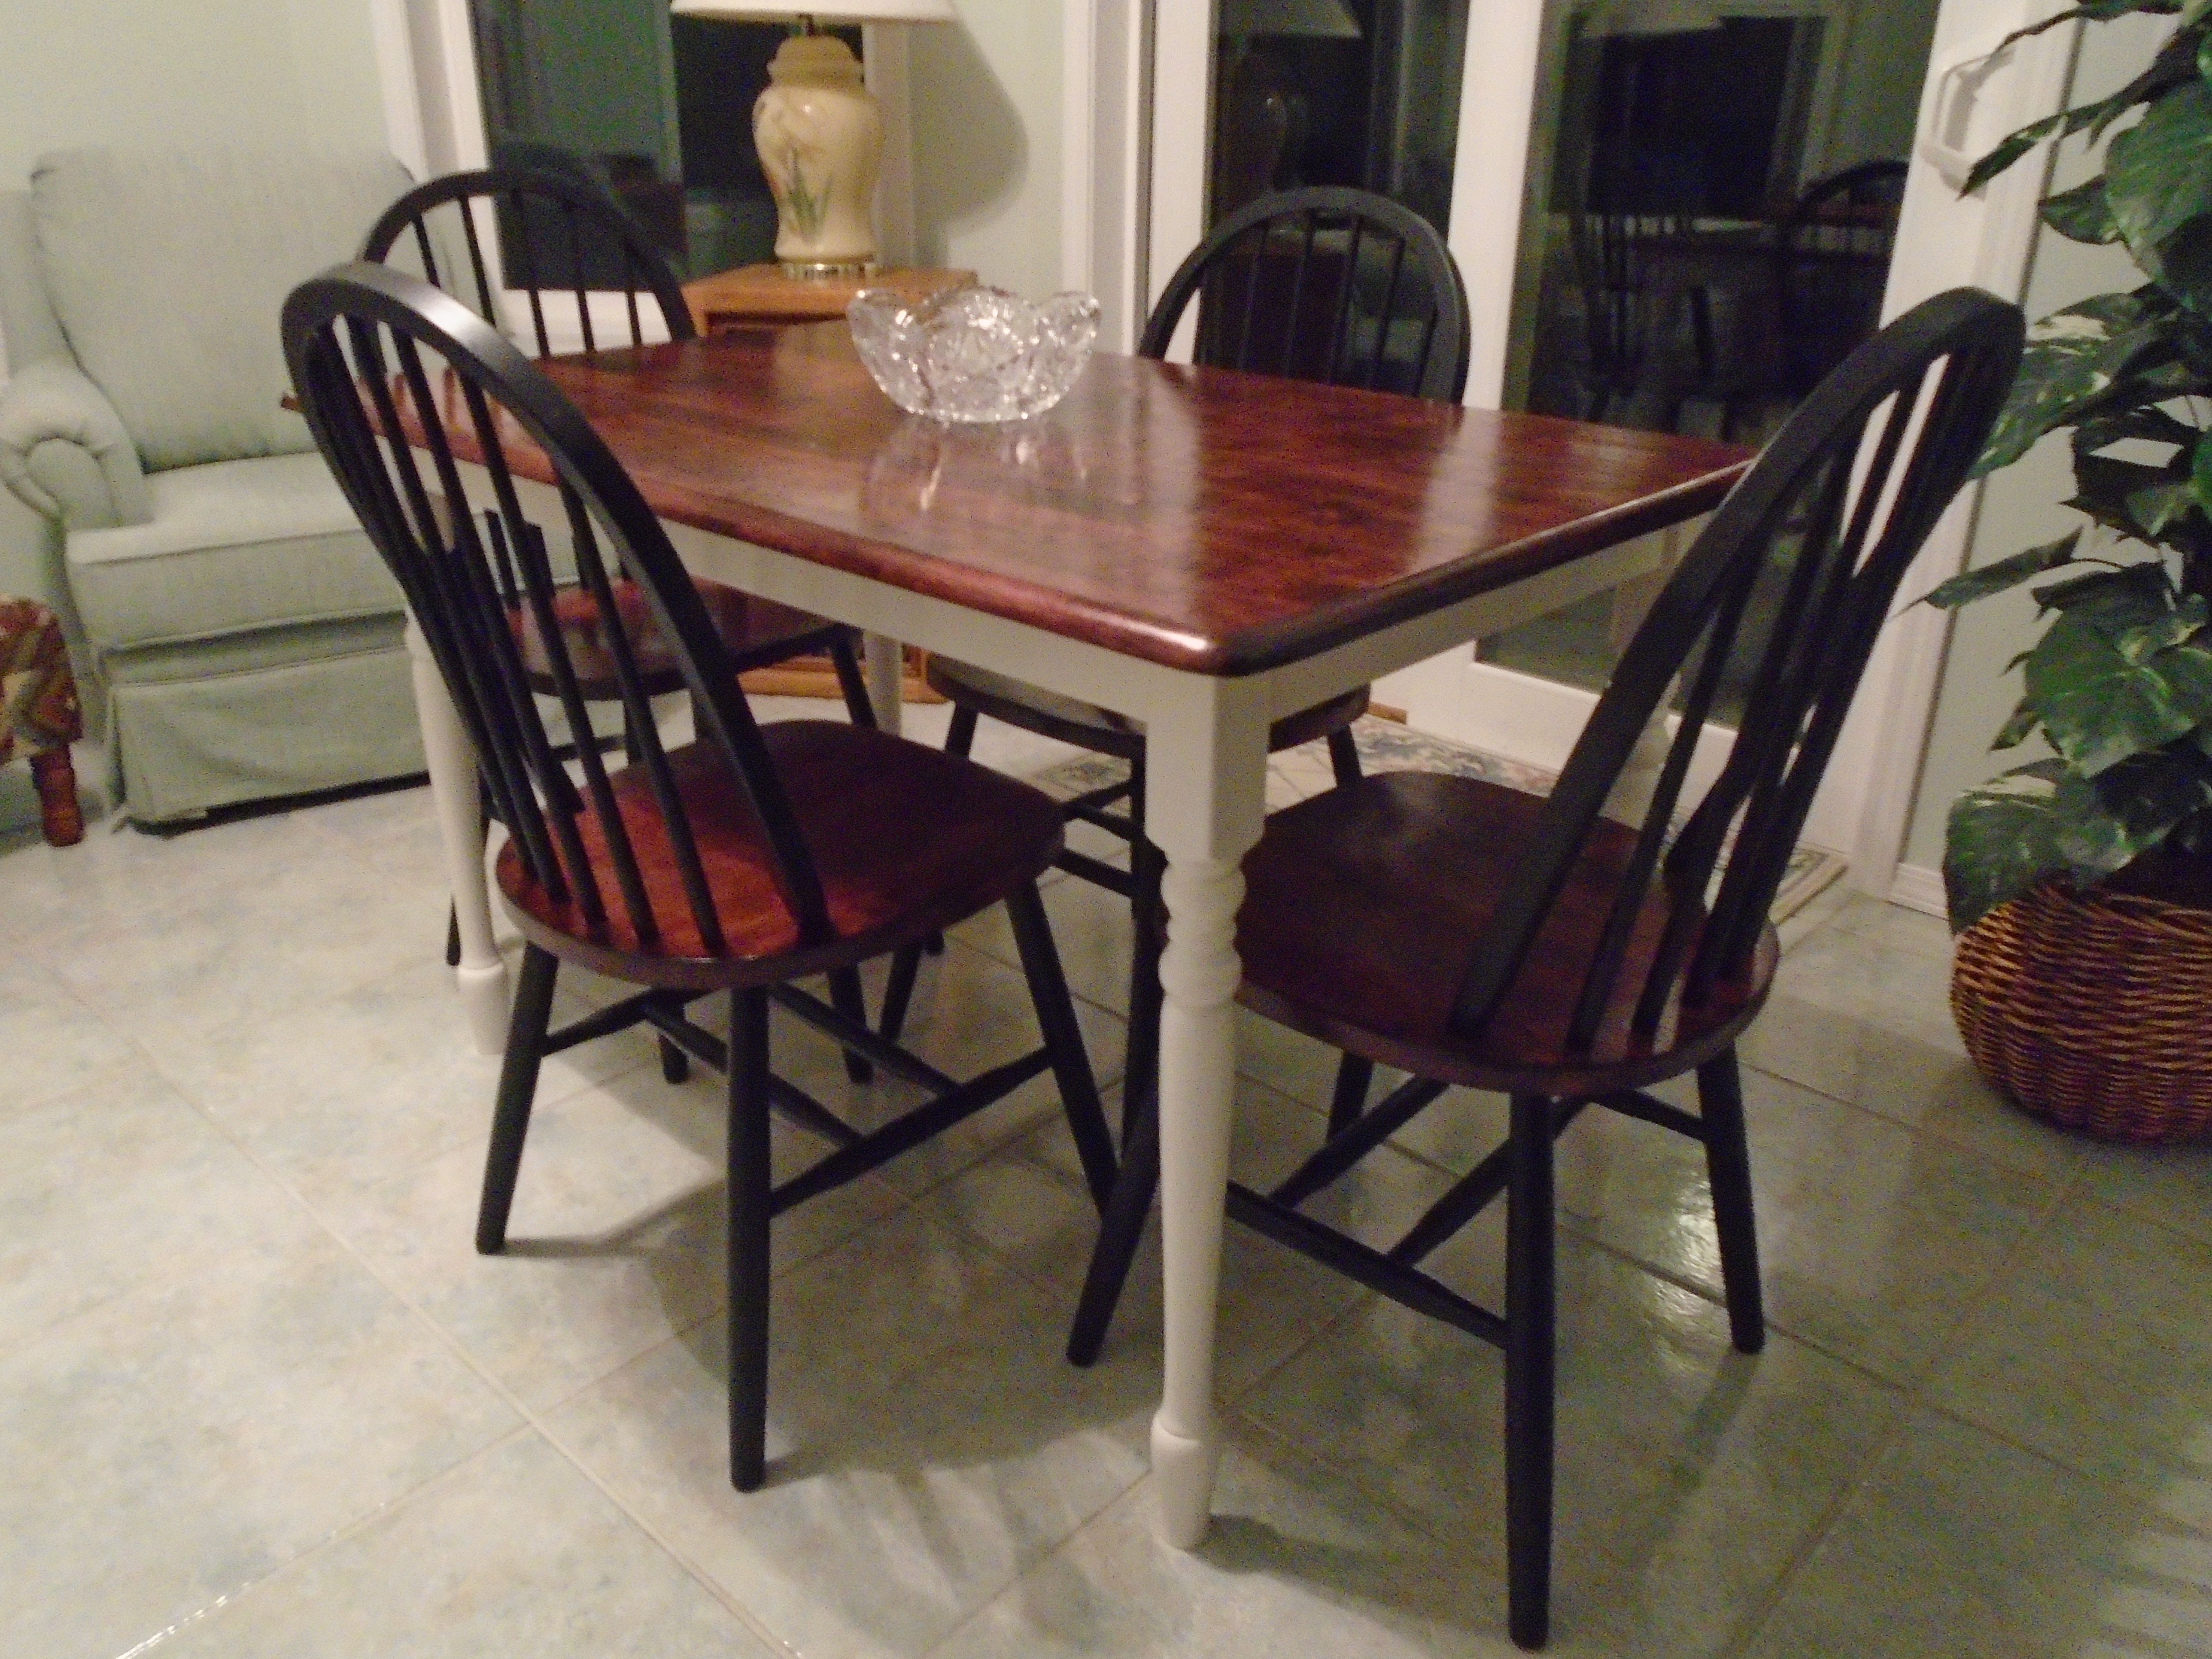 Rustic Farmhouse Table Brown Stained Top White Painted Legs - Black farmhouse table and chairs